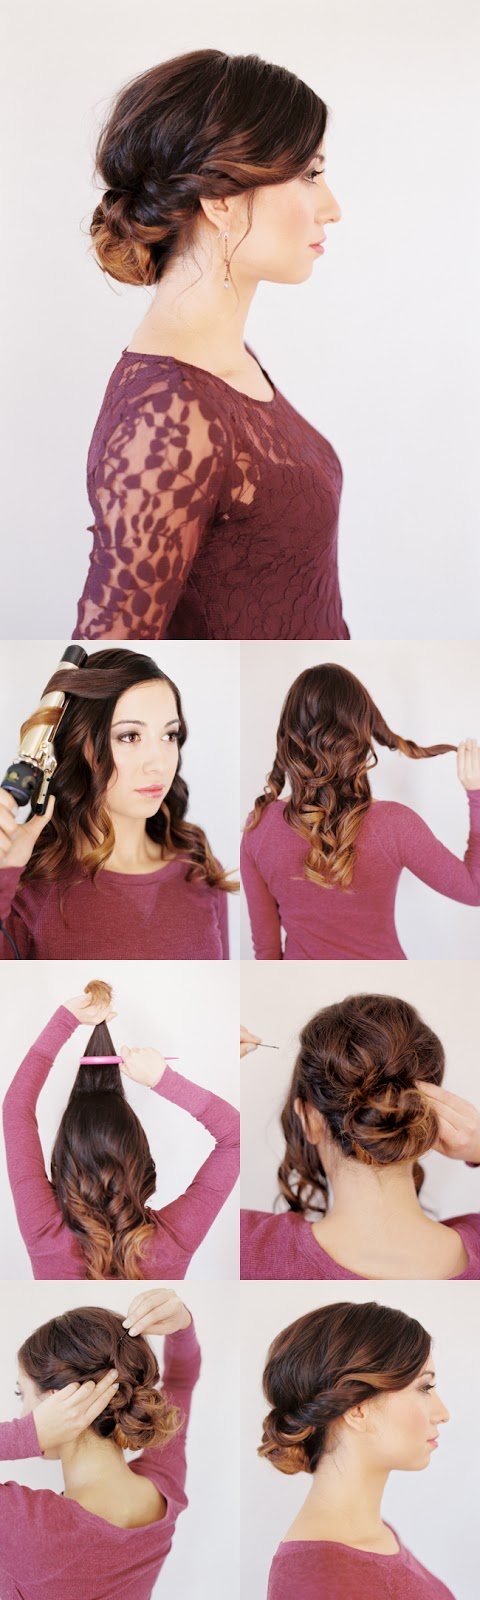 hairstyle16